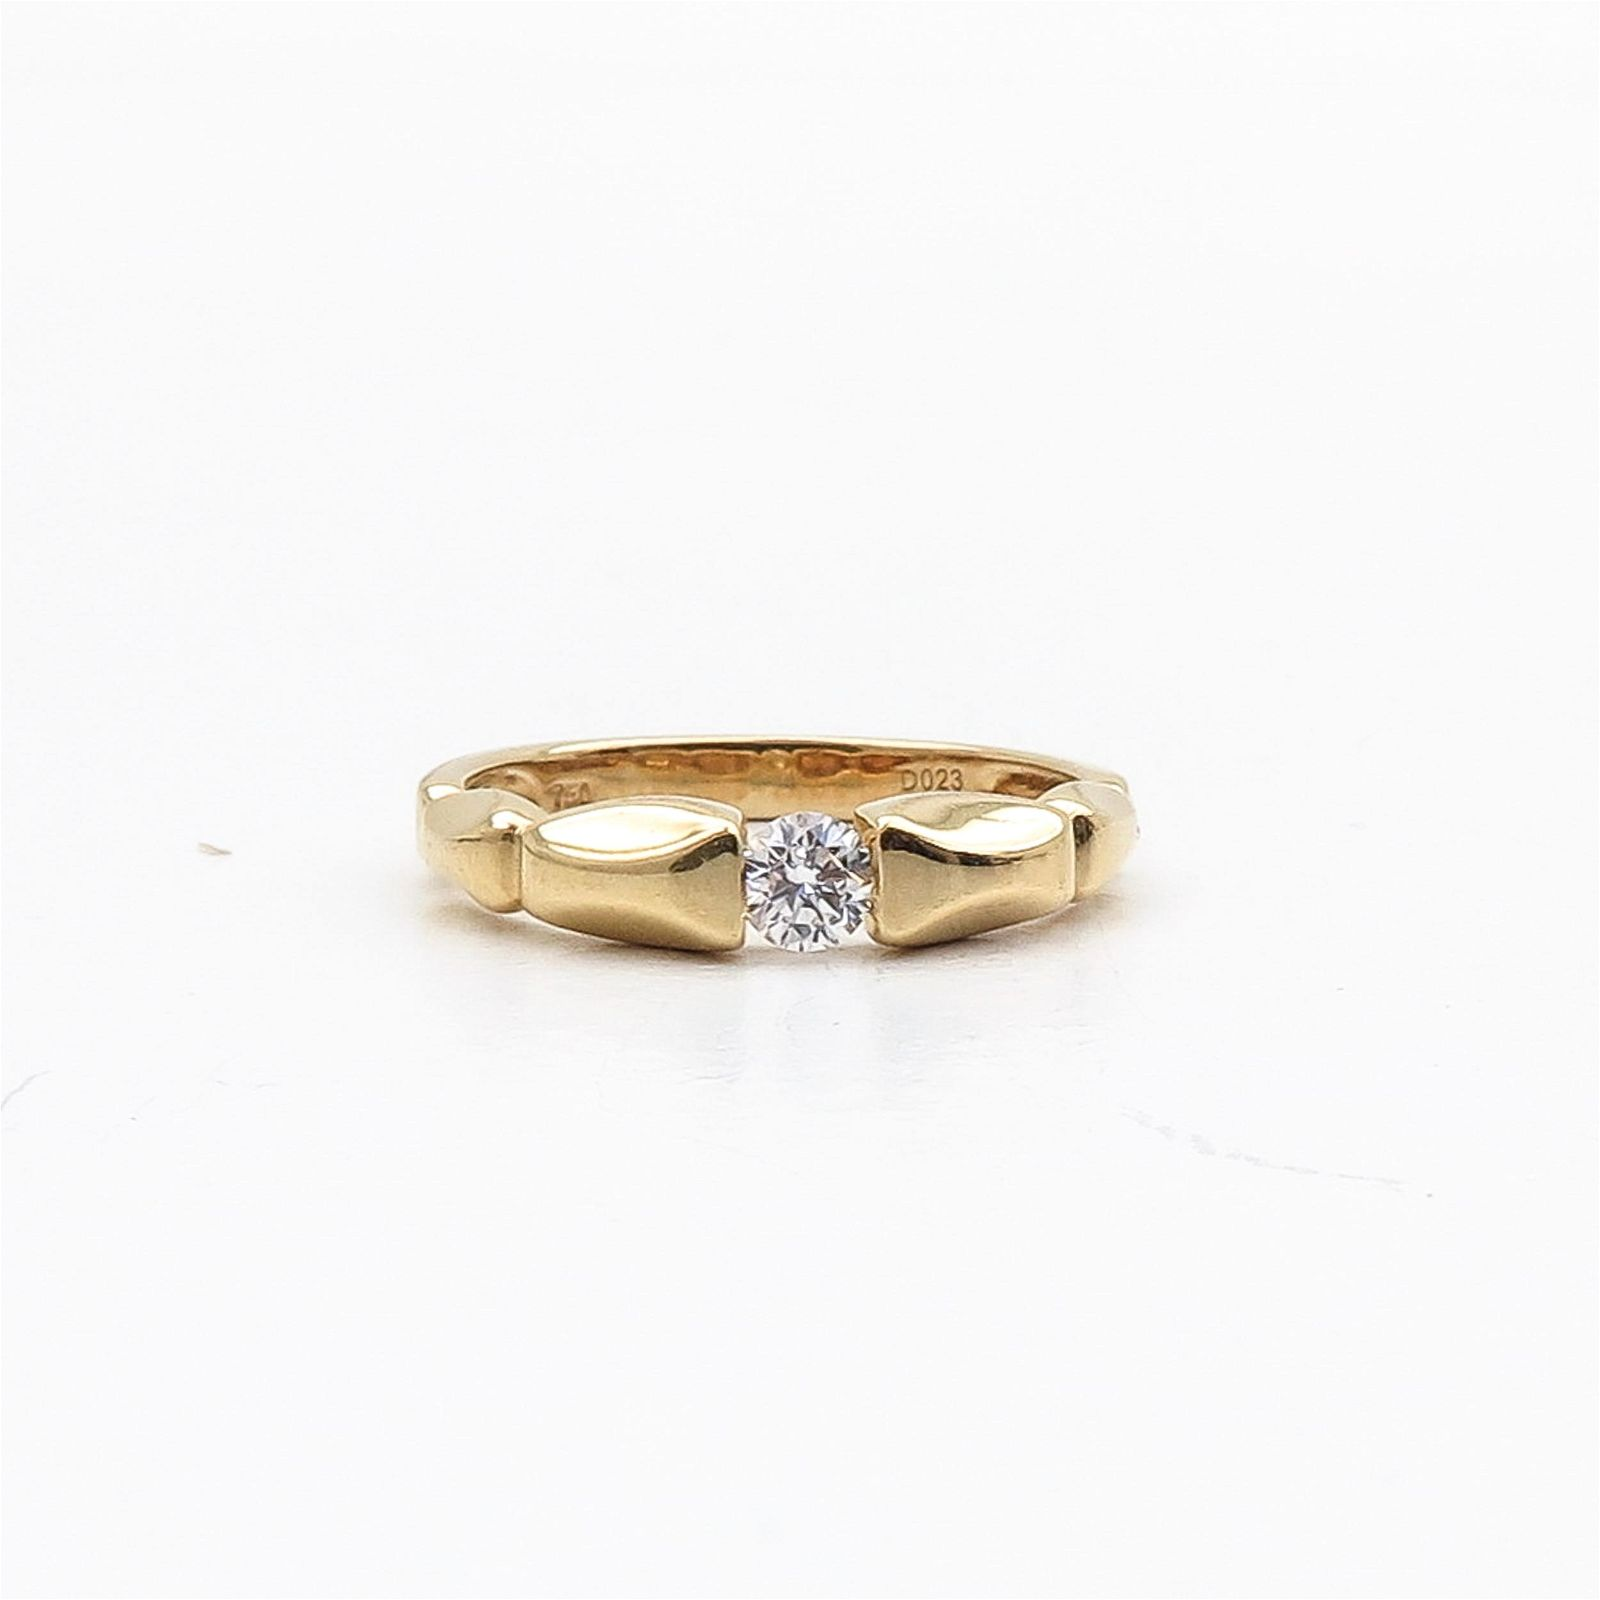 An 18KG Ladies Diamond Solitaire Ring